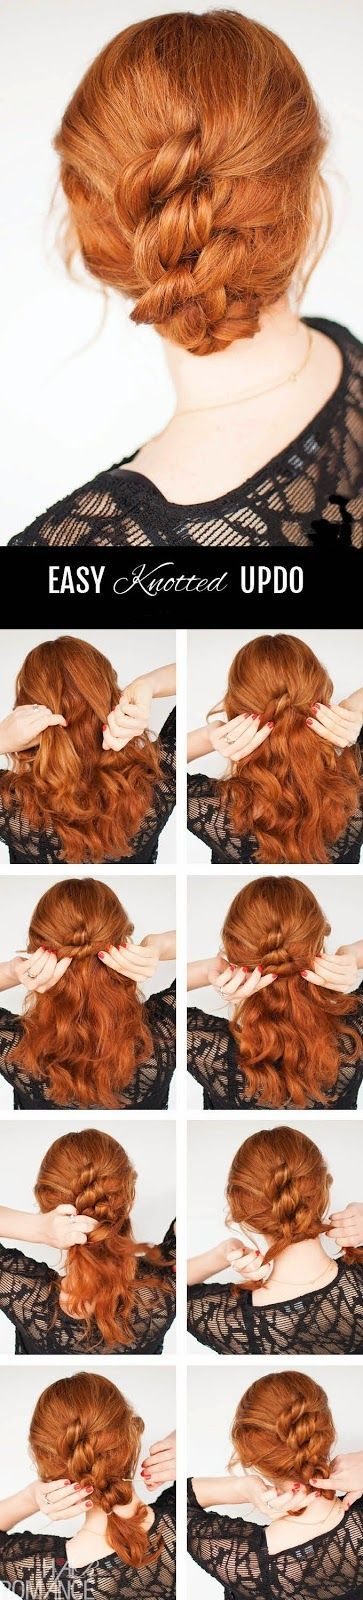 Knotted Updo Hairstyle Step 1 Comb Your Hair And Divide Into 2